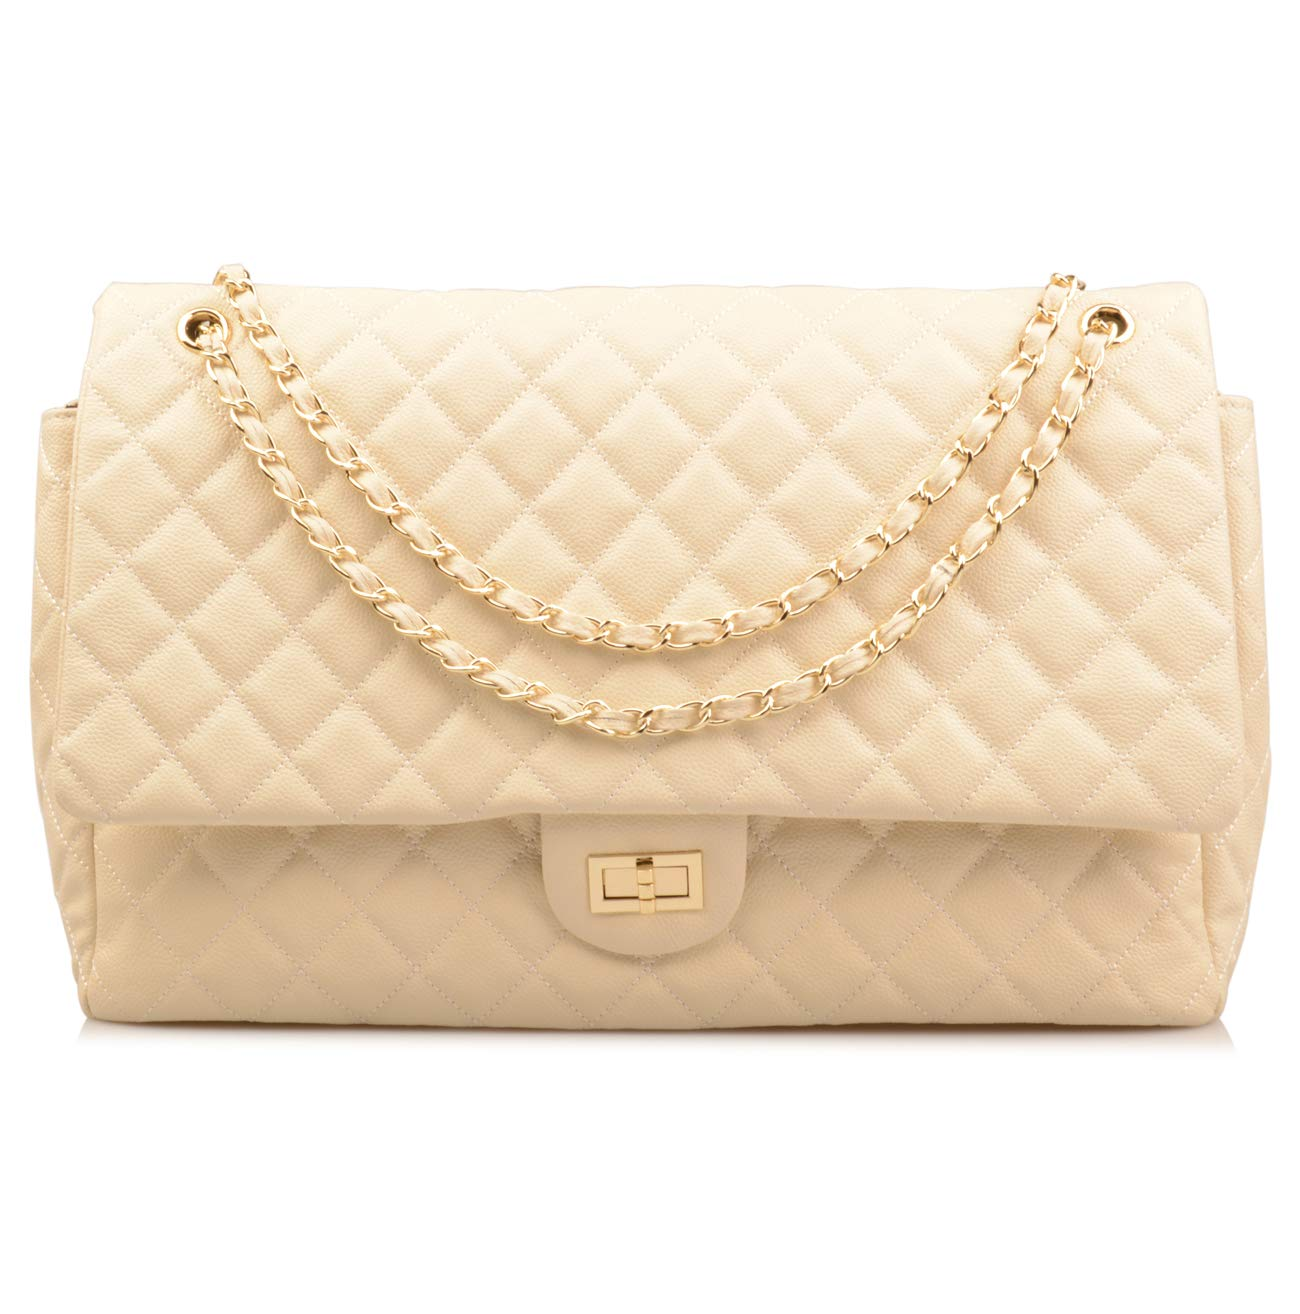 Ainifeel Women's Genuine Leather Oversize Quilted Flap Handbag Large Travelling Tote Bag Luggage Holdall (Oversize, Beige with gold hardware)